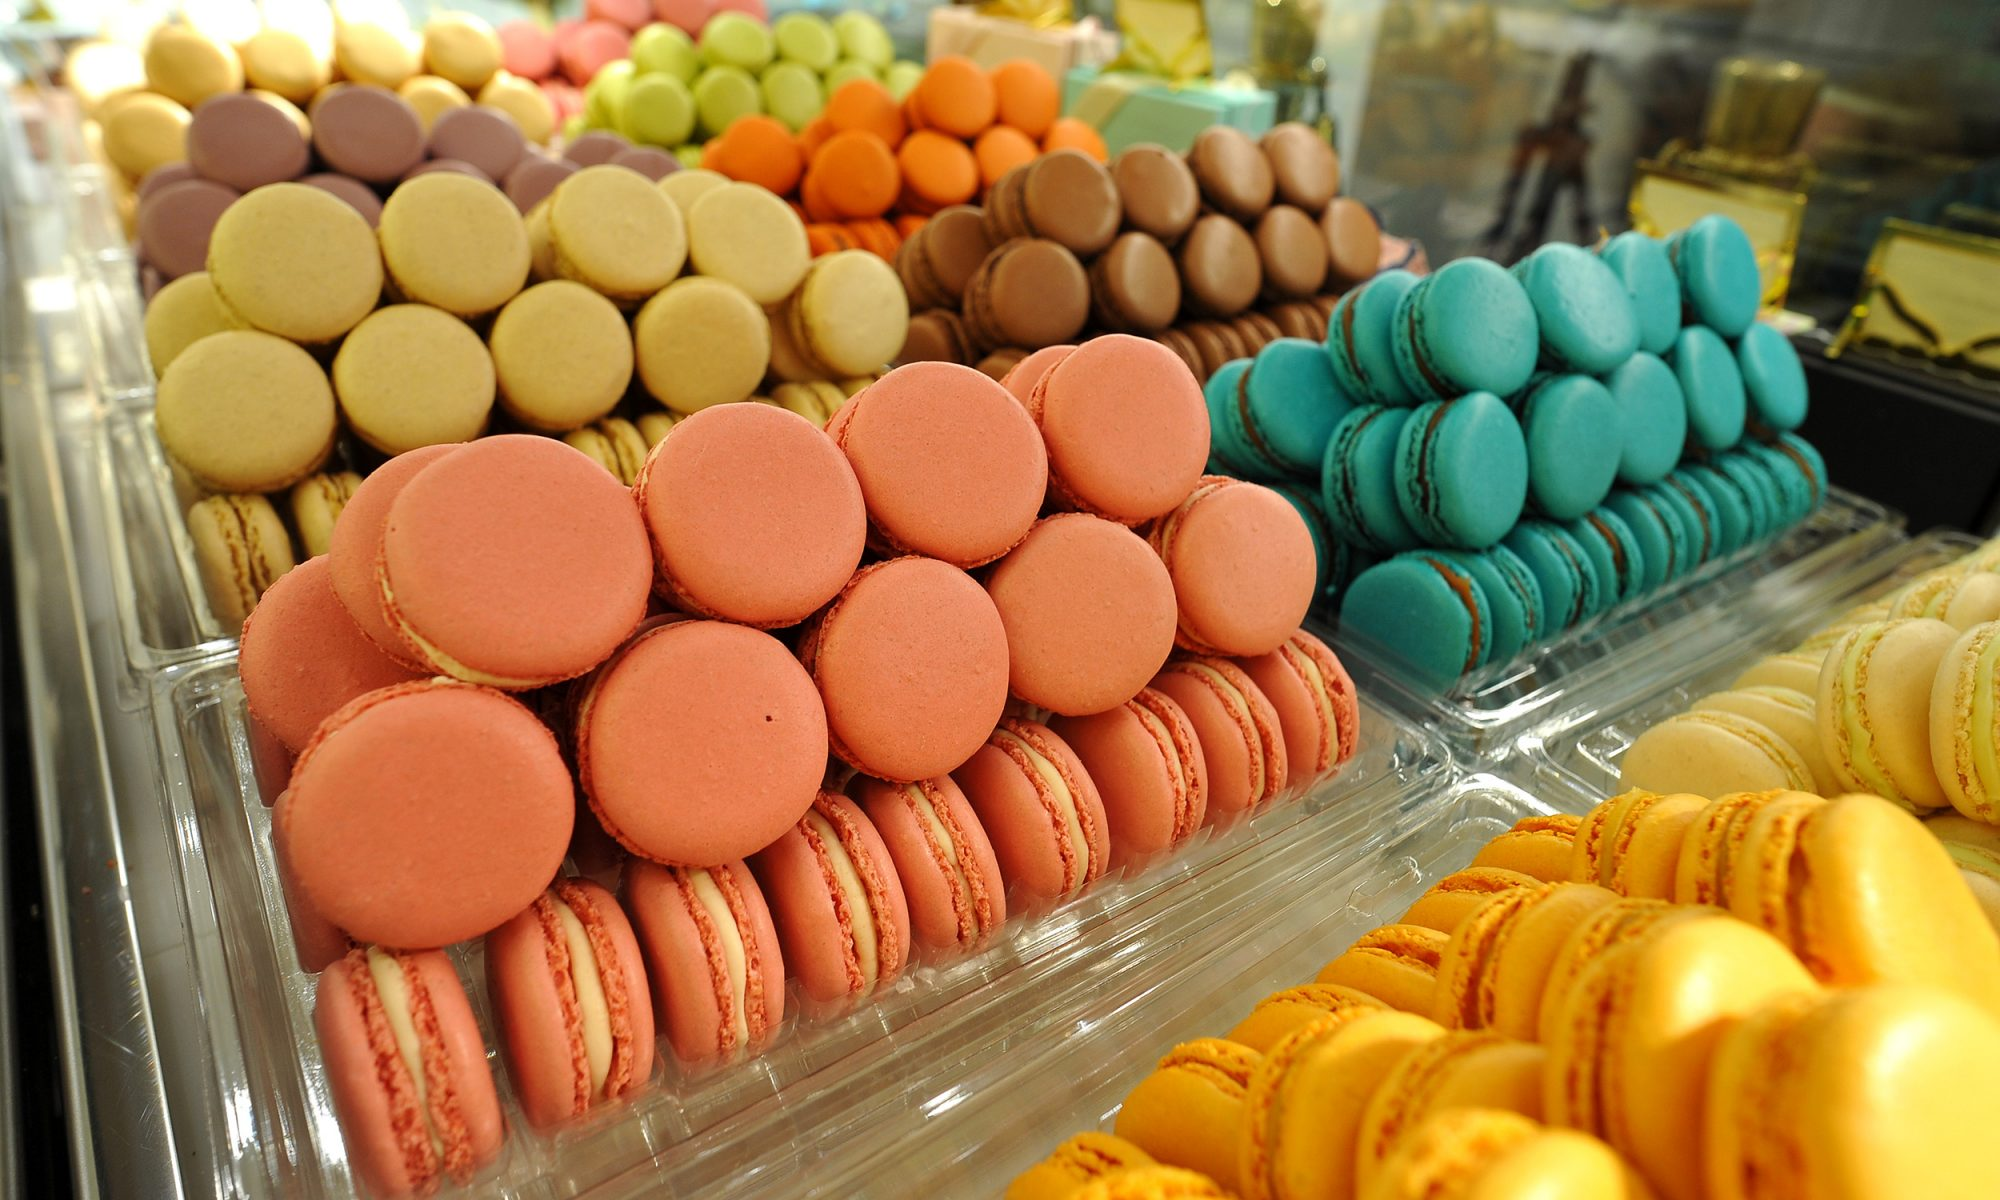 EC: The Most Exciting Pâtisseries in Paris Are Run by Women